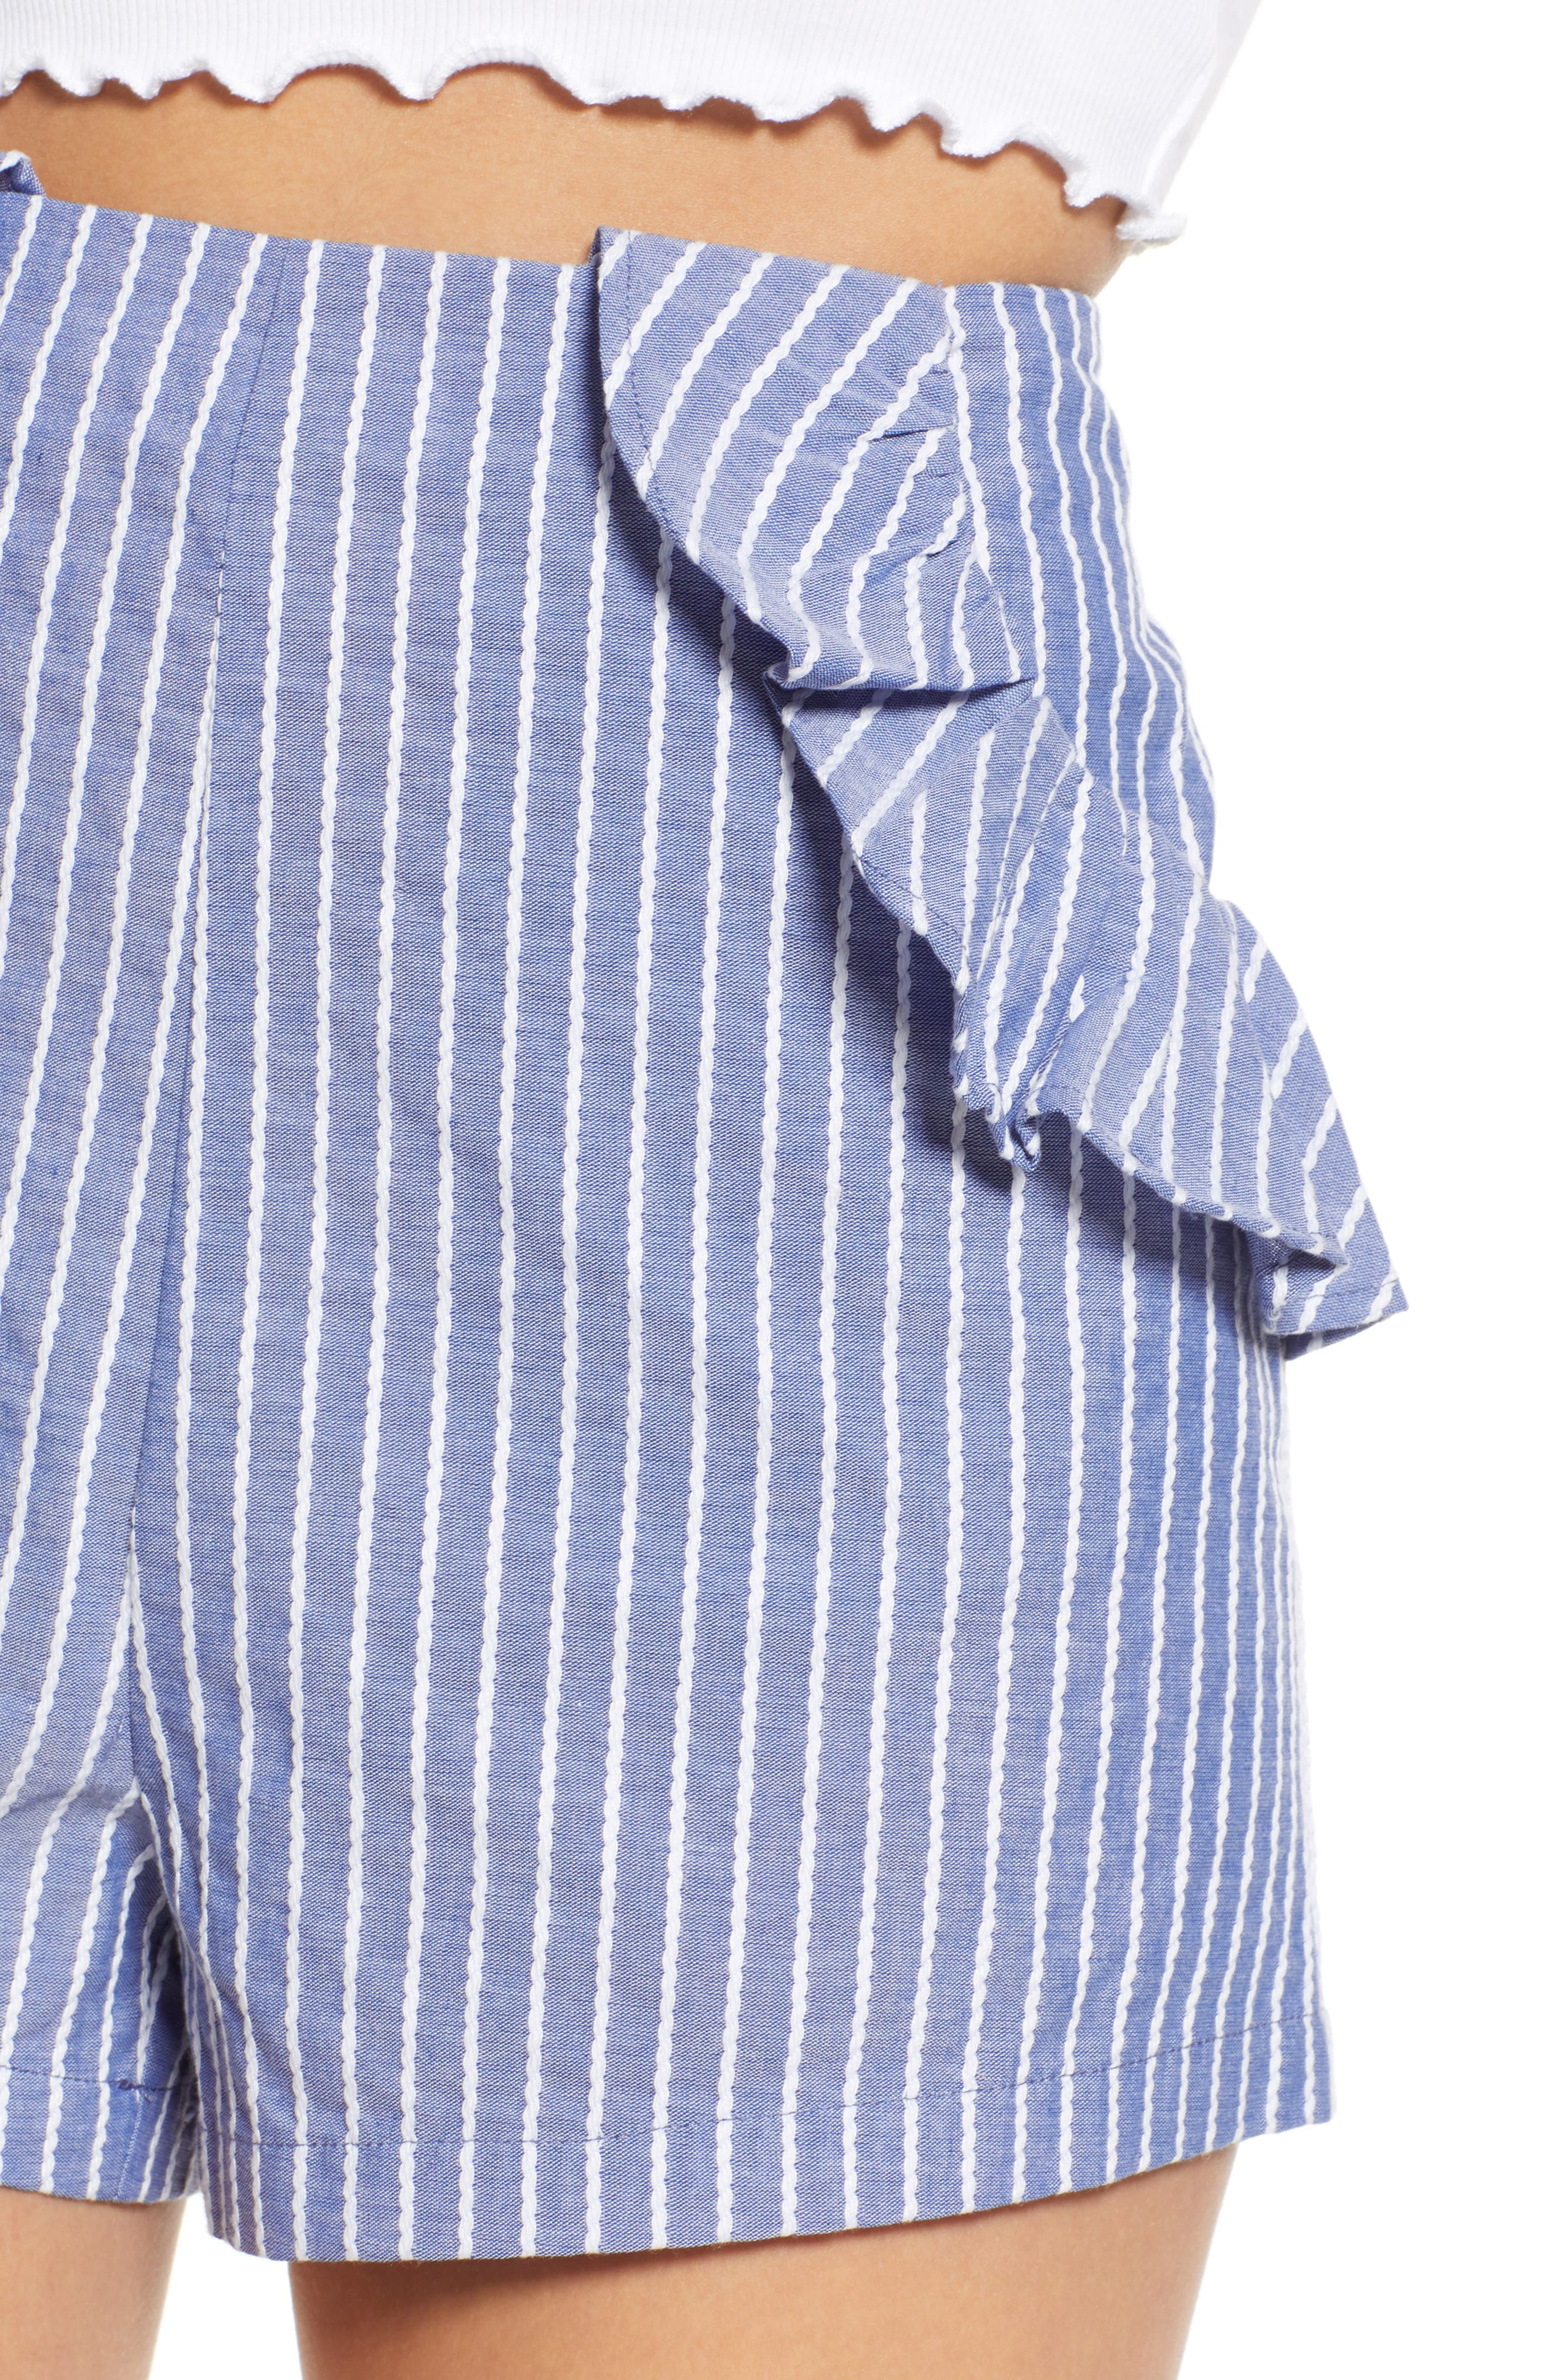 Parcel Ruffle Detail Shorts,                             Alternate thumbnail 4, color,                             Blue With White